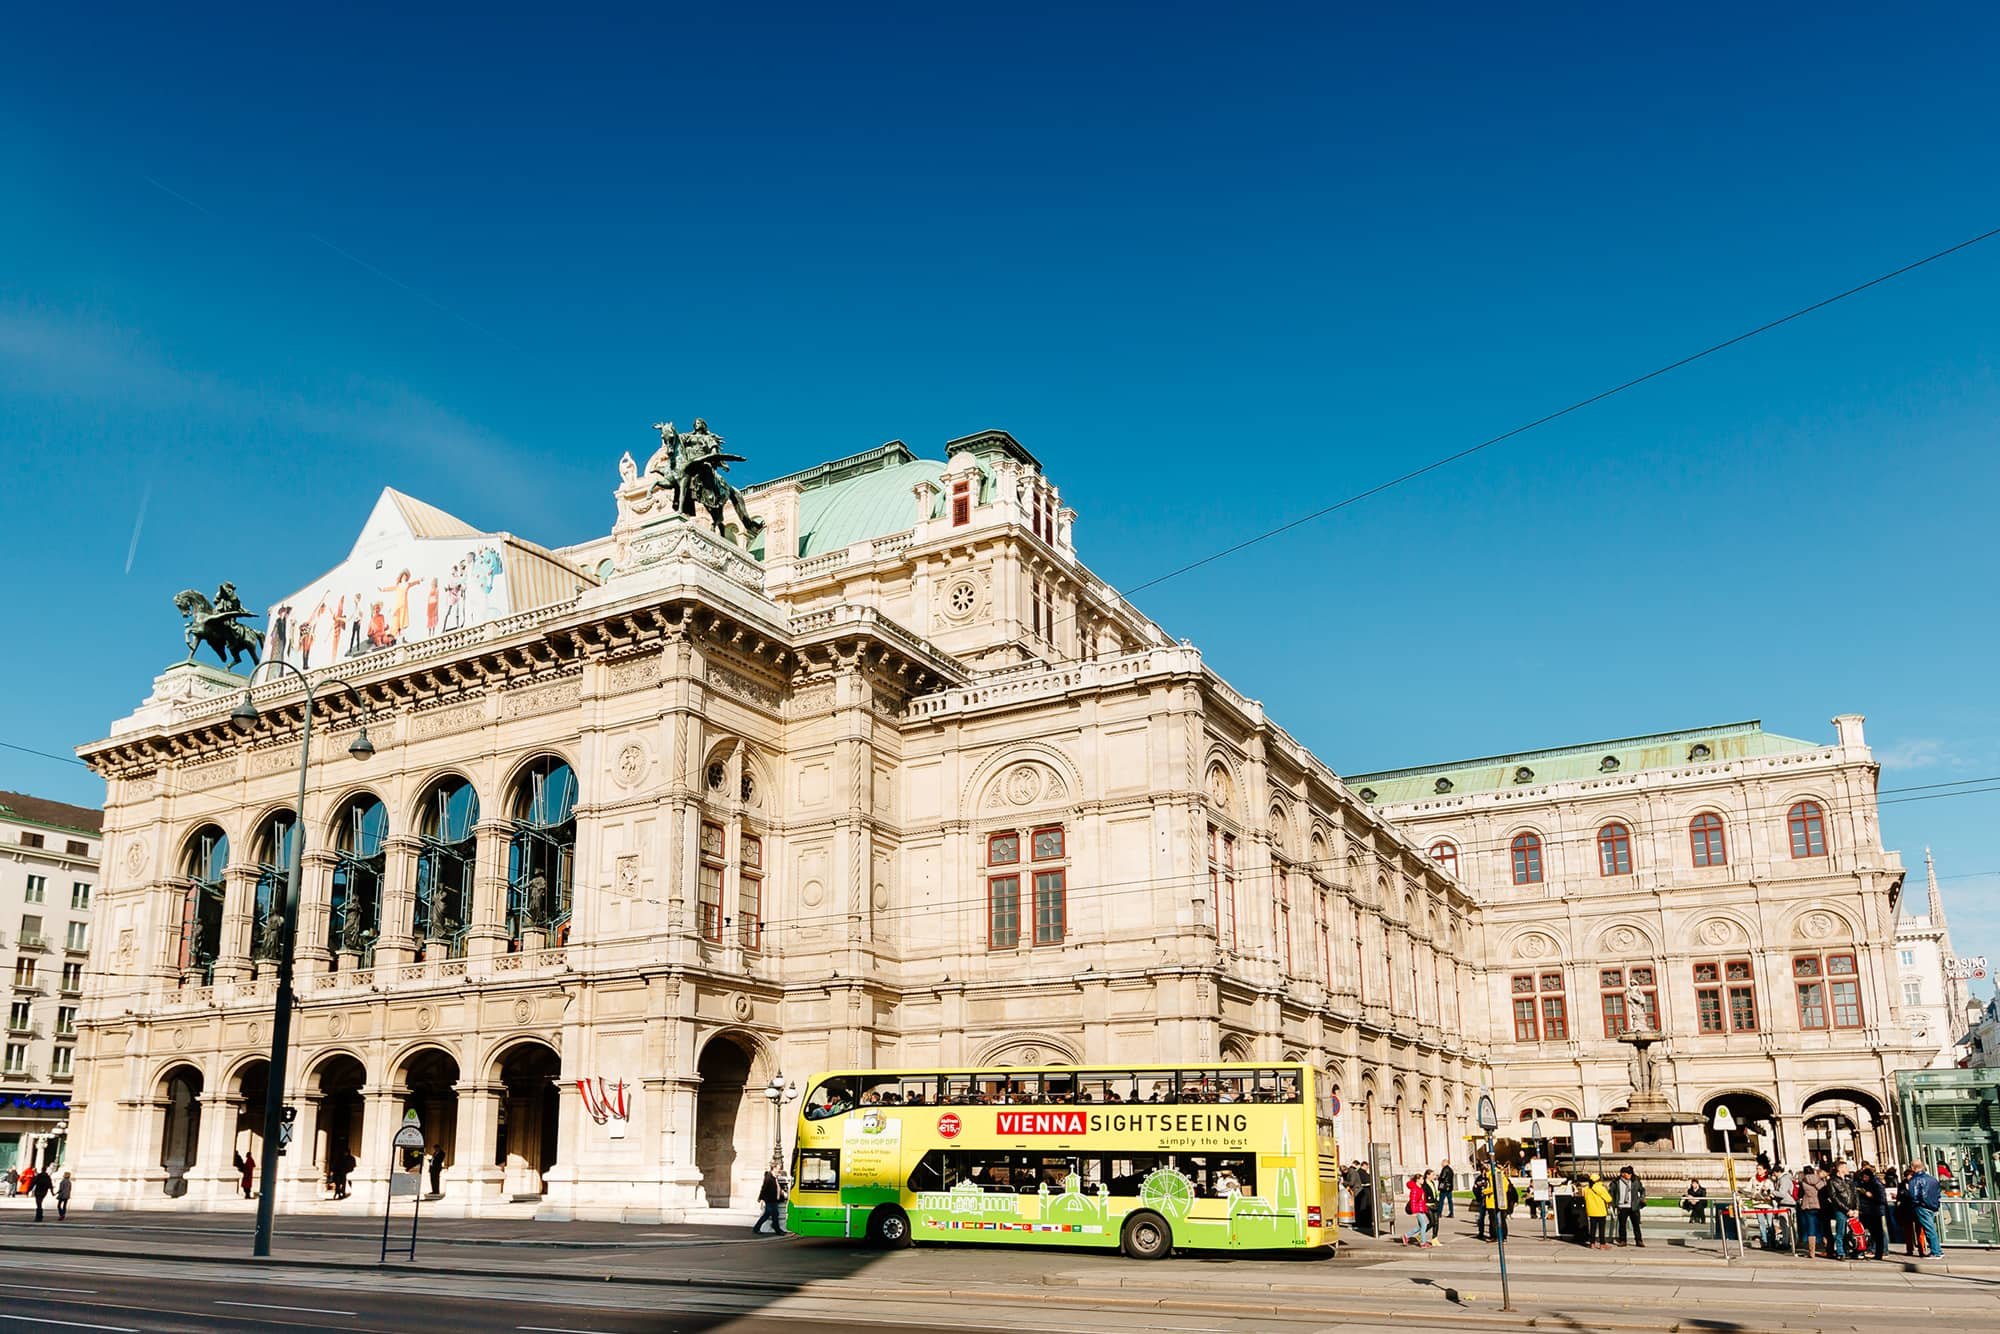 Hop on hop off Tour in Vienna (c) VIENNA SIGHTSEEING TOURS_Bernhard Luck.jpg